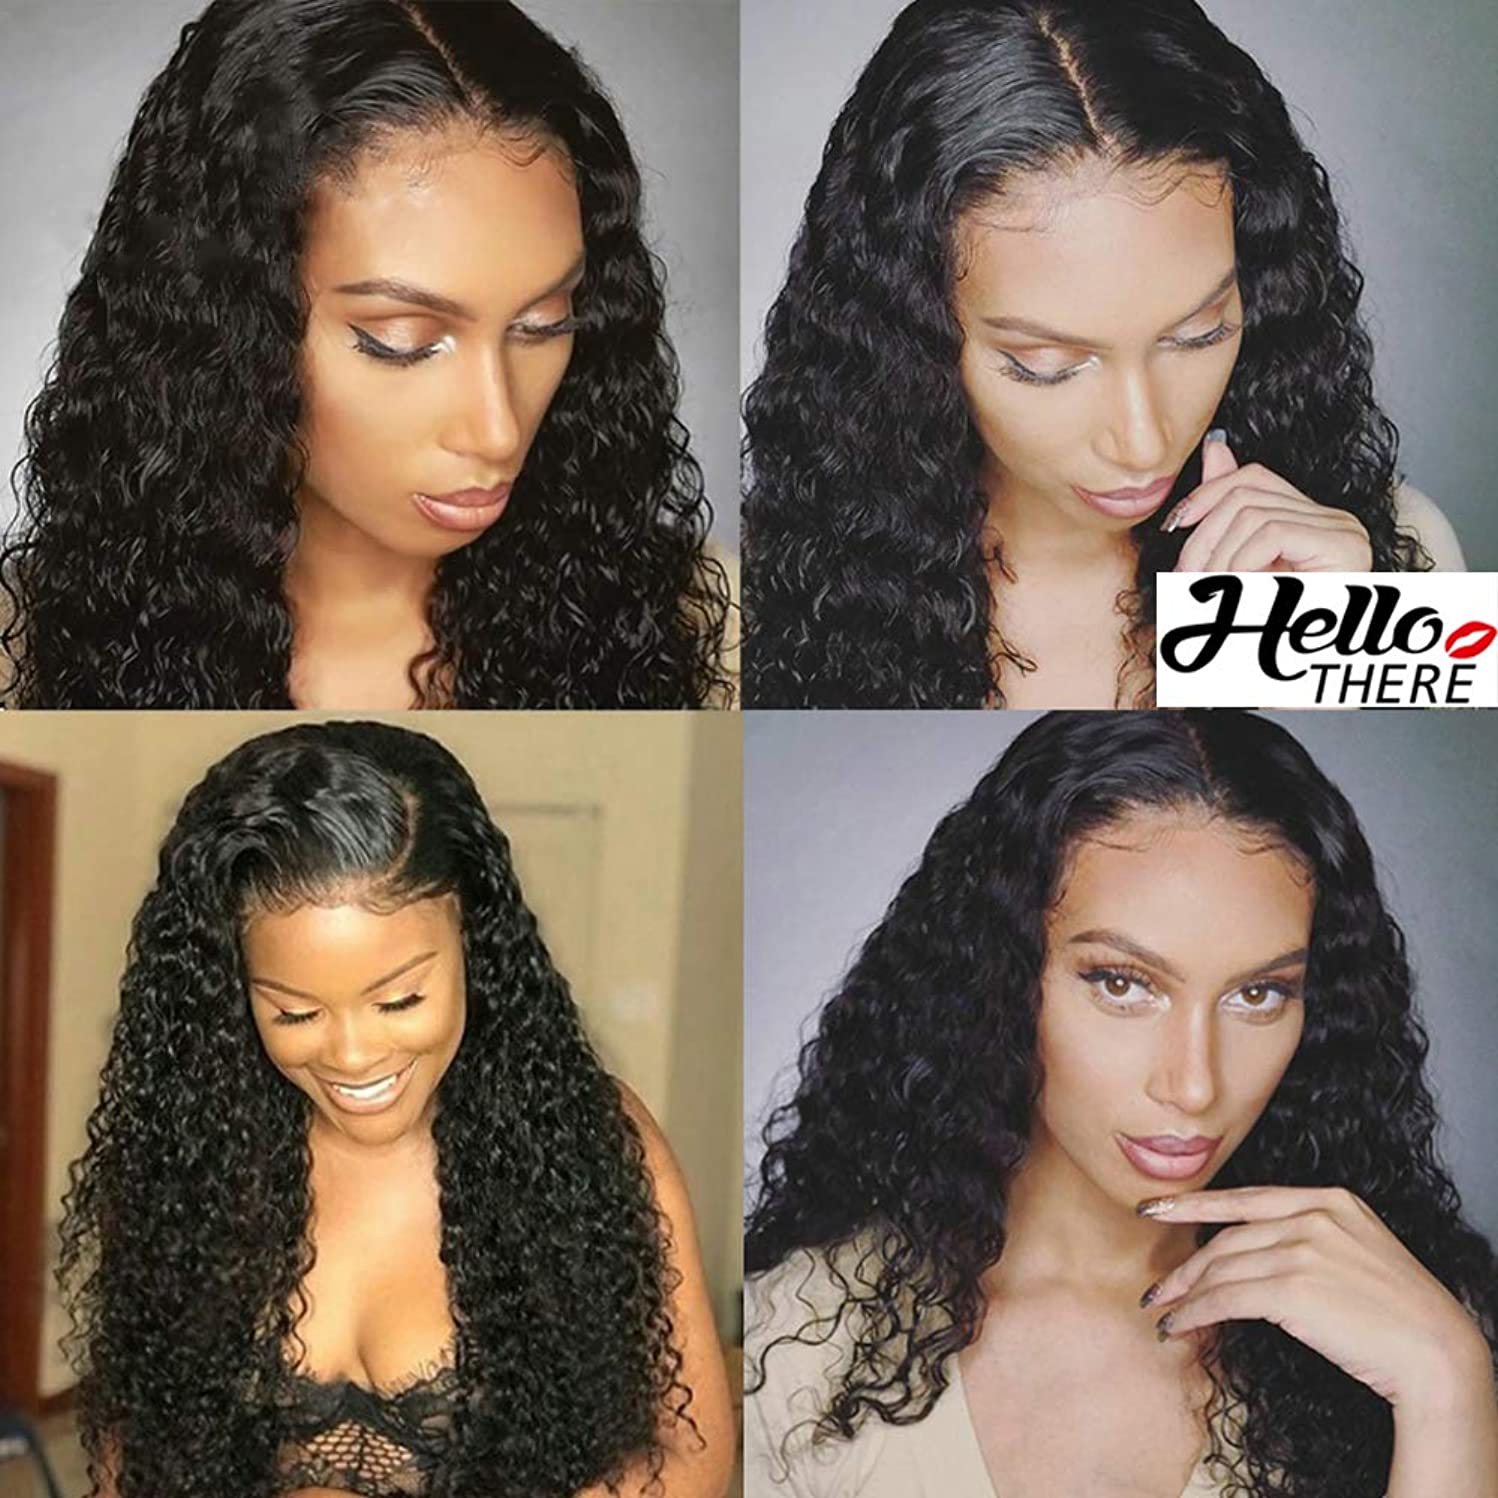 360 Lace Frontal Wigs Pre Plucked 180% Density Brazilian Virgin Water Wave Human Hair Wigs for Black Women 16 inch Natural Color